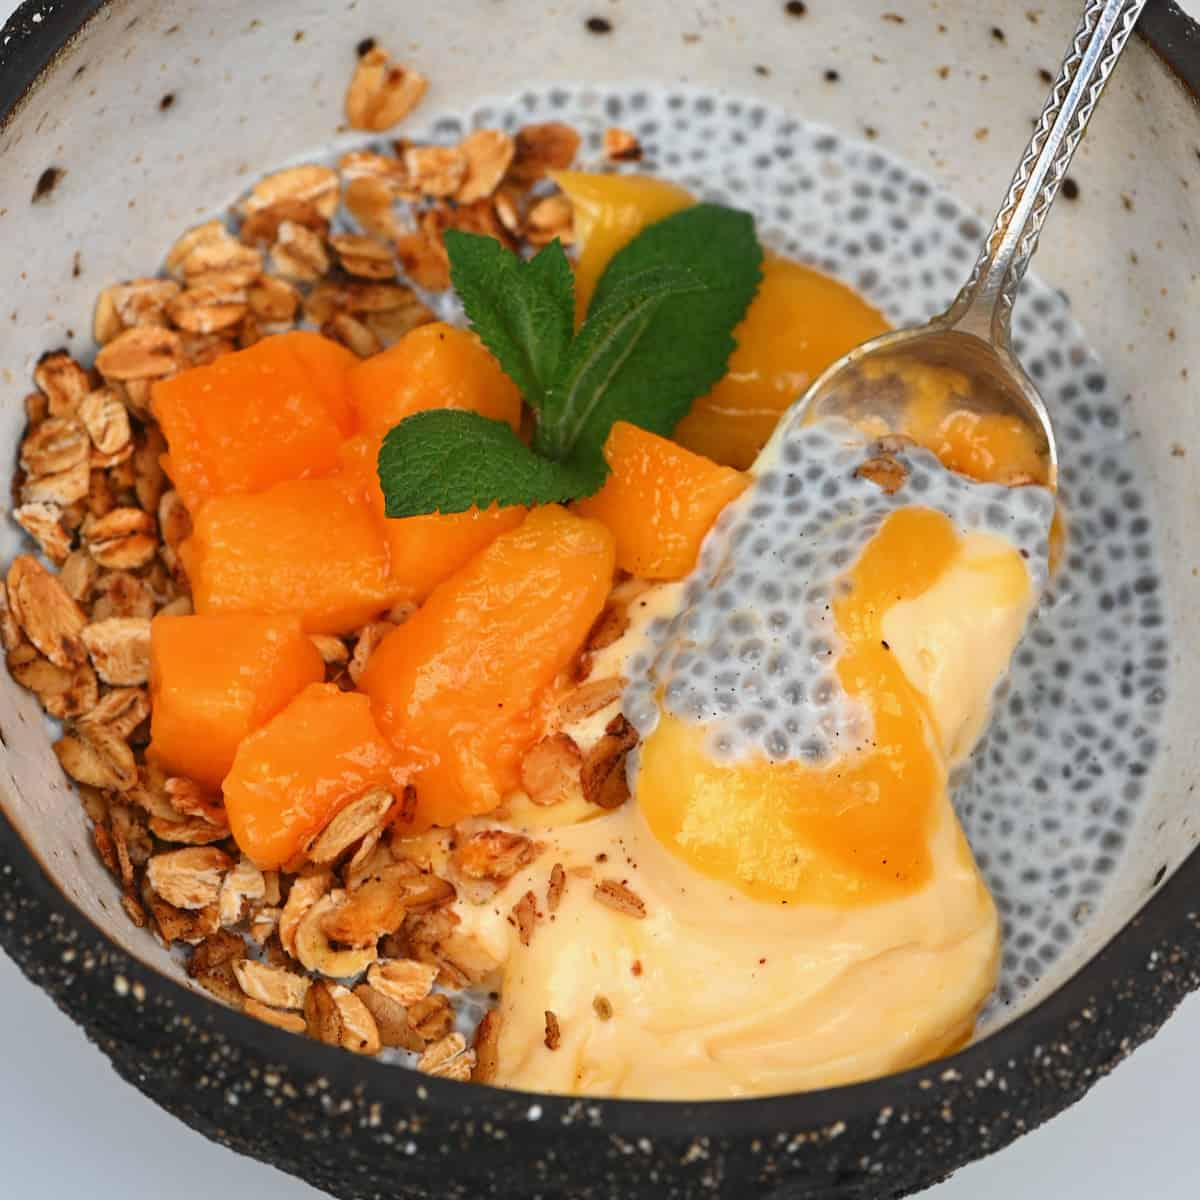 Mango breakfast with chia pudding